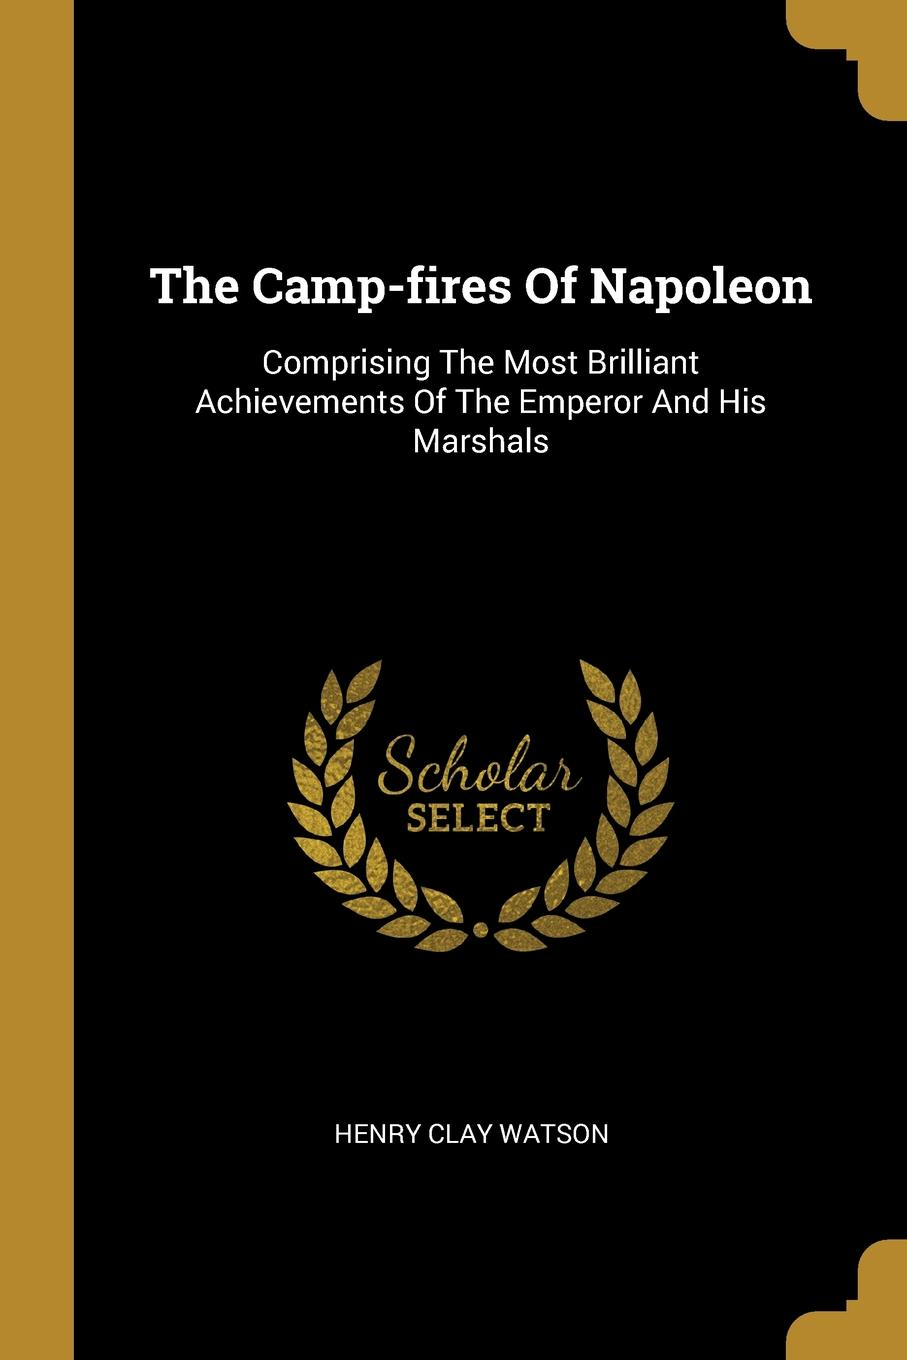 Henry Clay Watson The Camp-fires Of Napoleon. Comprising The Most Brilliant Achievements Of The Emperor And His Marshals henry clay watson the camp fires of napoleon